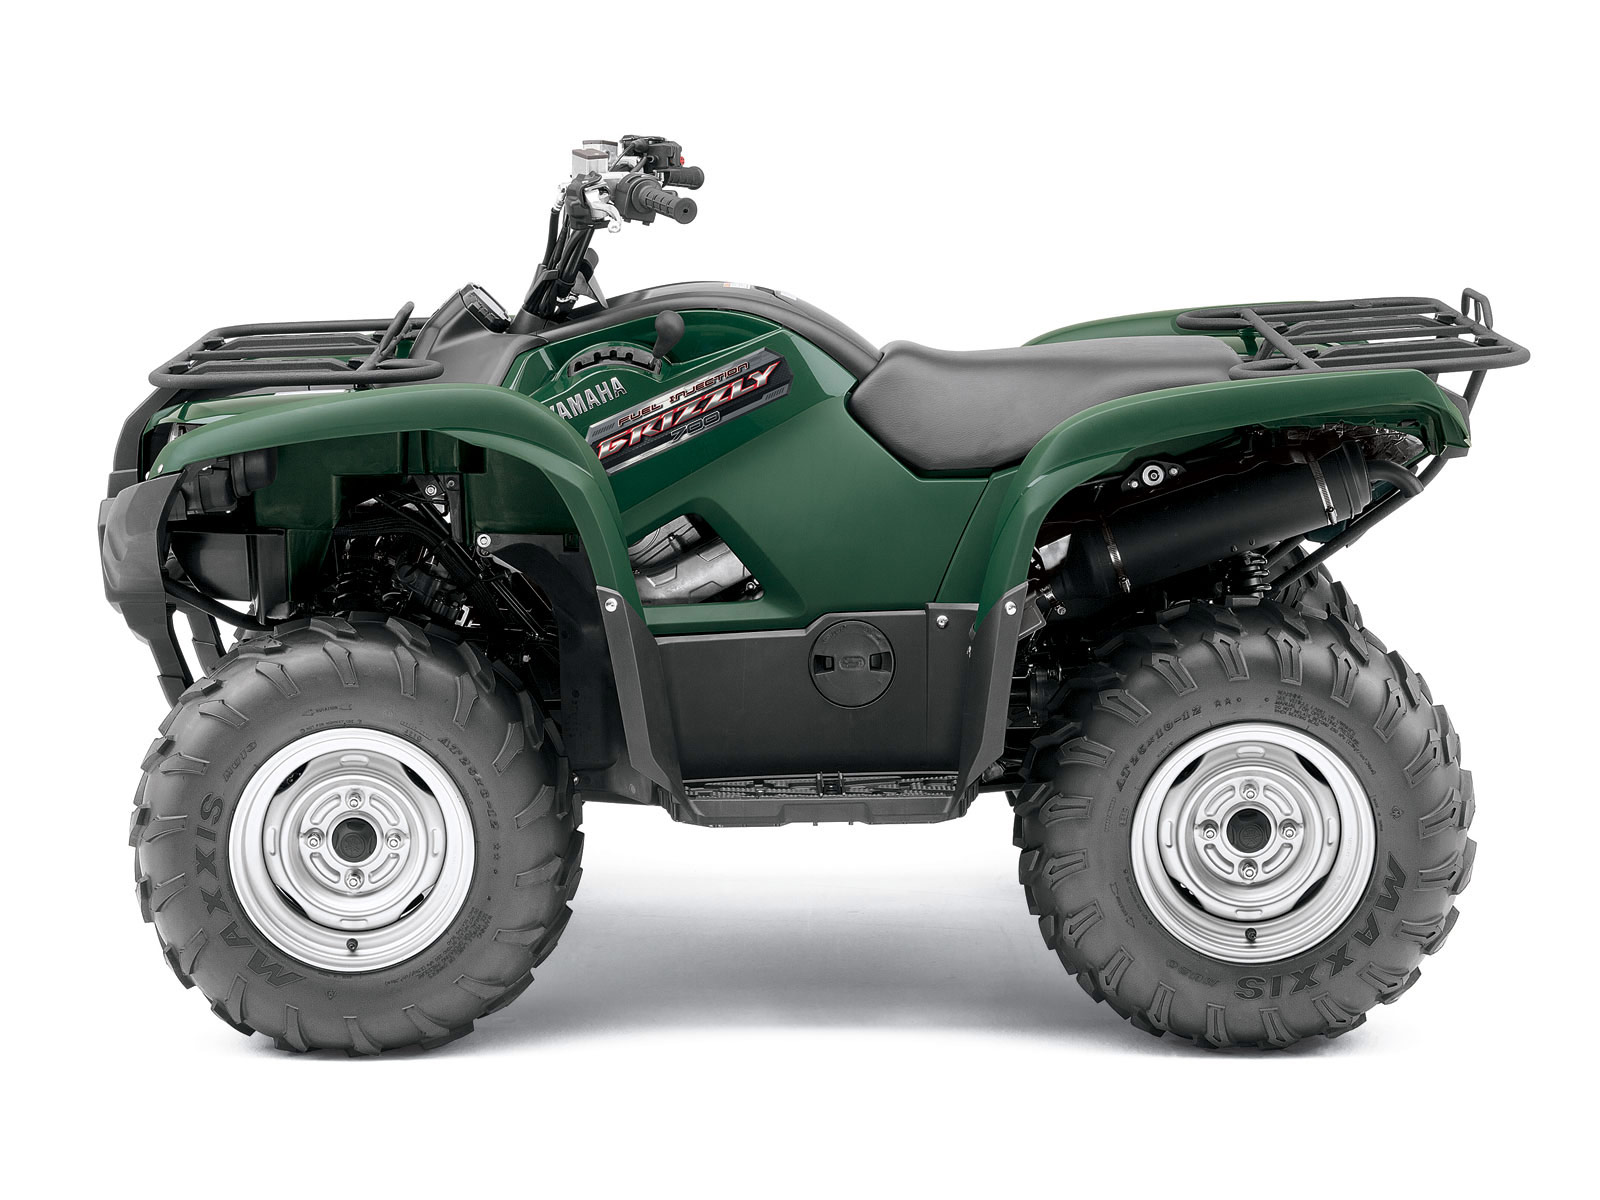 2012 yamaha grizzly 700fi auto 4x4 atv insurance information for Yamaha grizzly atv